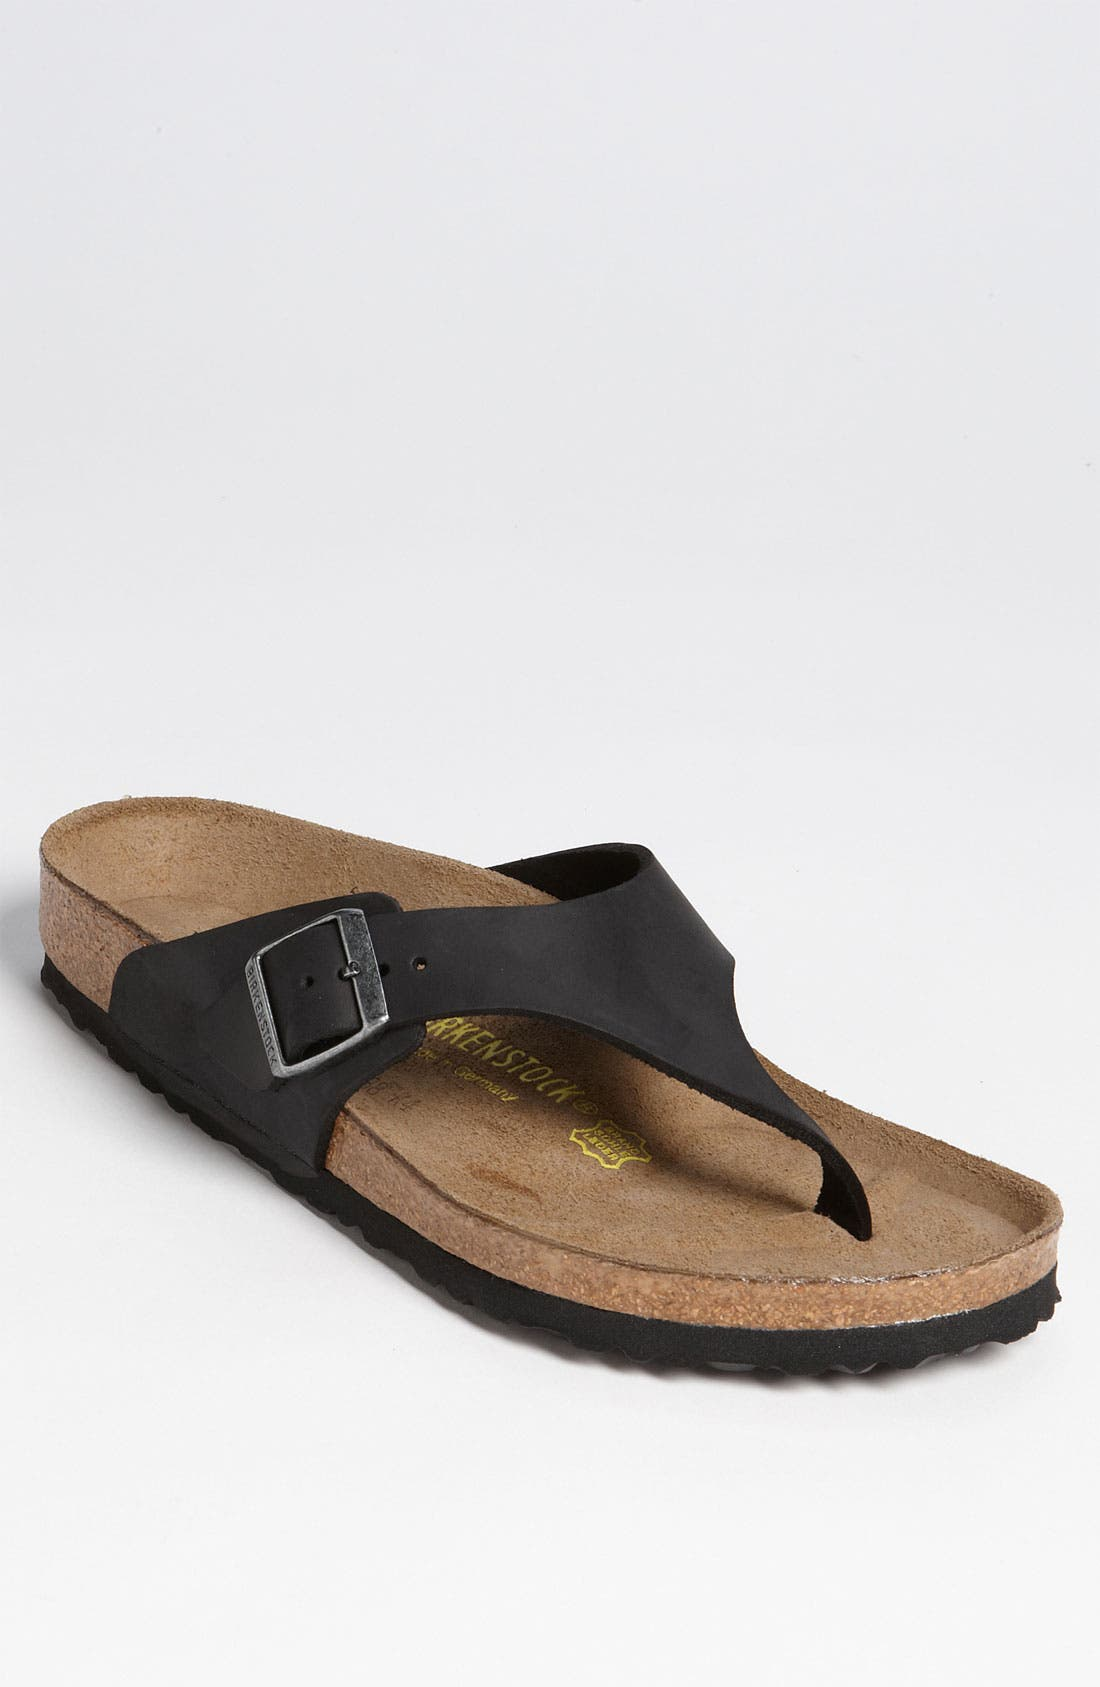 Alternate Image 1 Selected - Birkenstock 'Como' Flip Flop (Men)